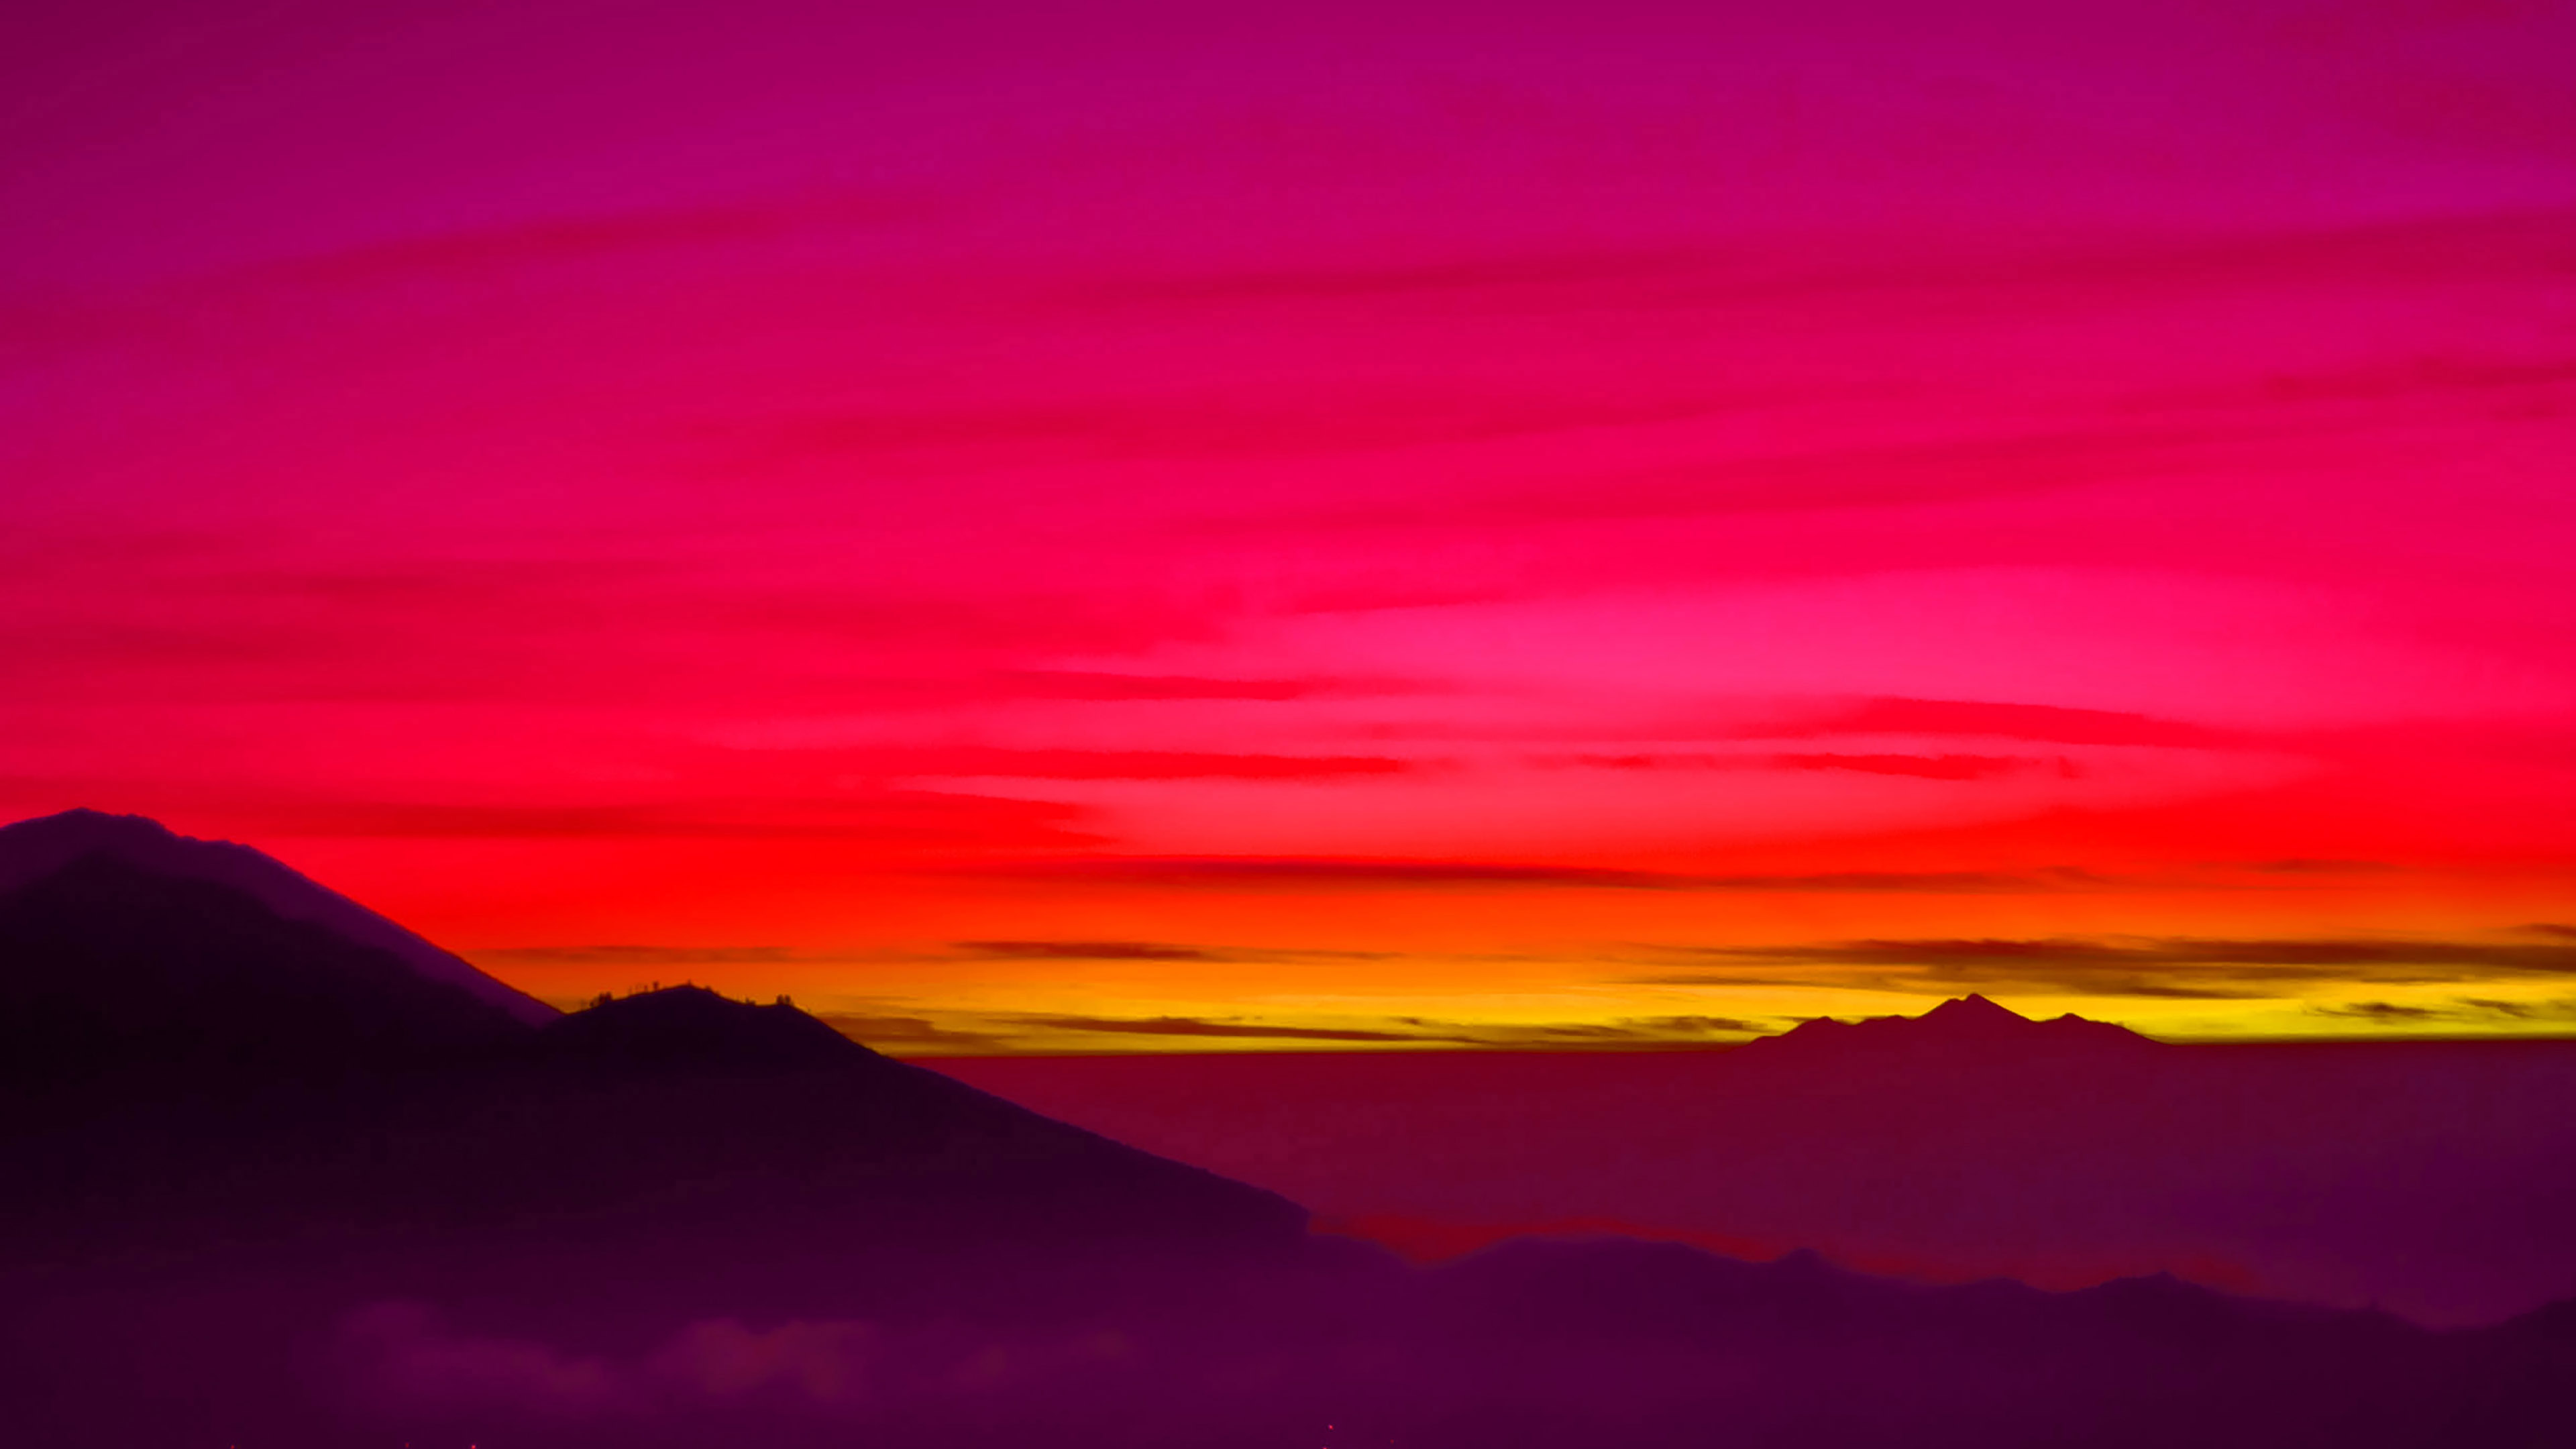 Macbook Wallpaper Fall Mc97 Wallpaper Red Balinese Dream Sea Mountain Sunset